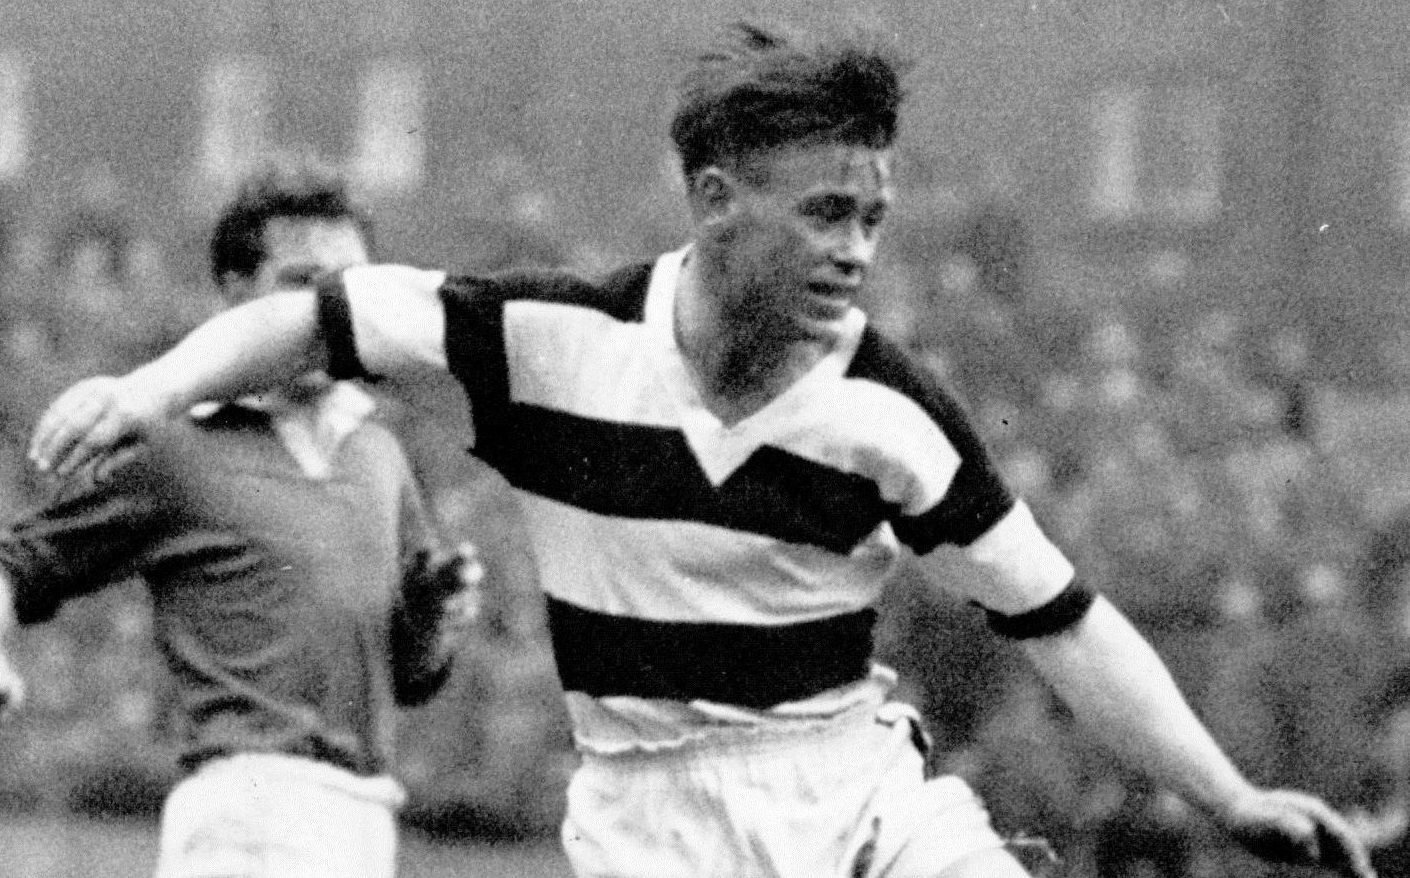 Johnny Coyle in action.